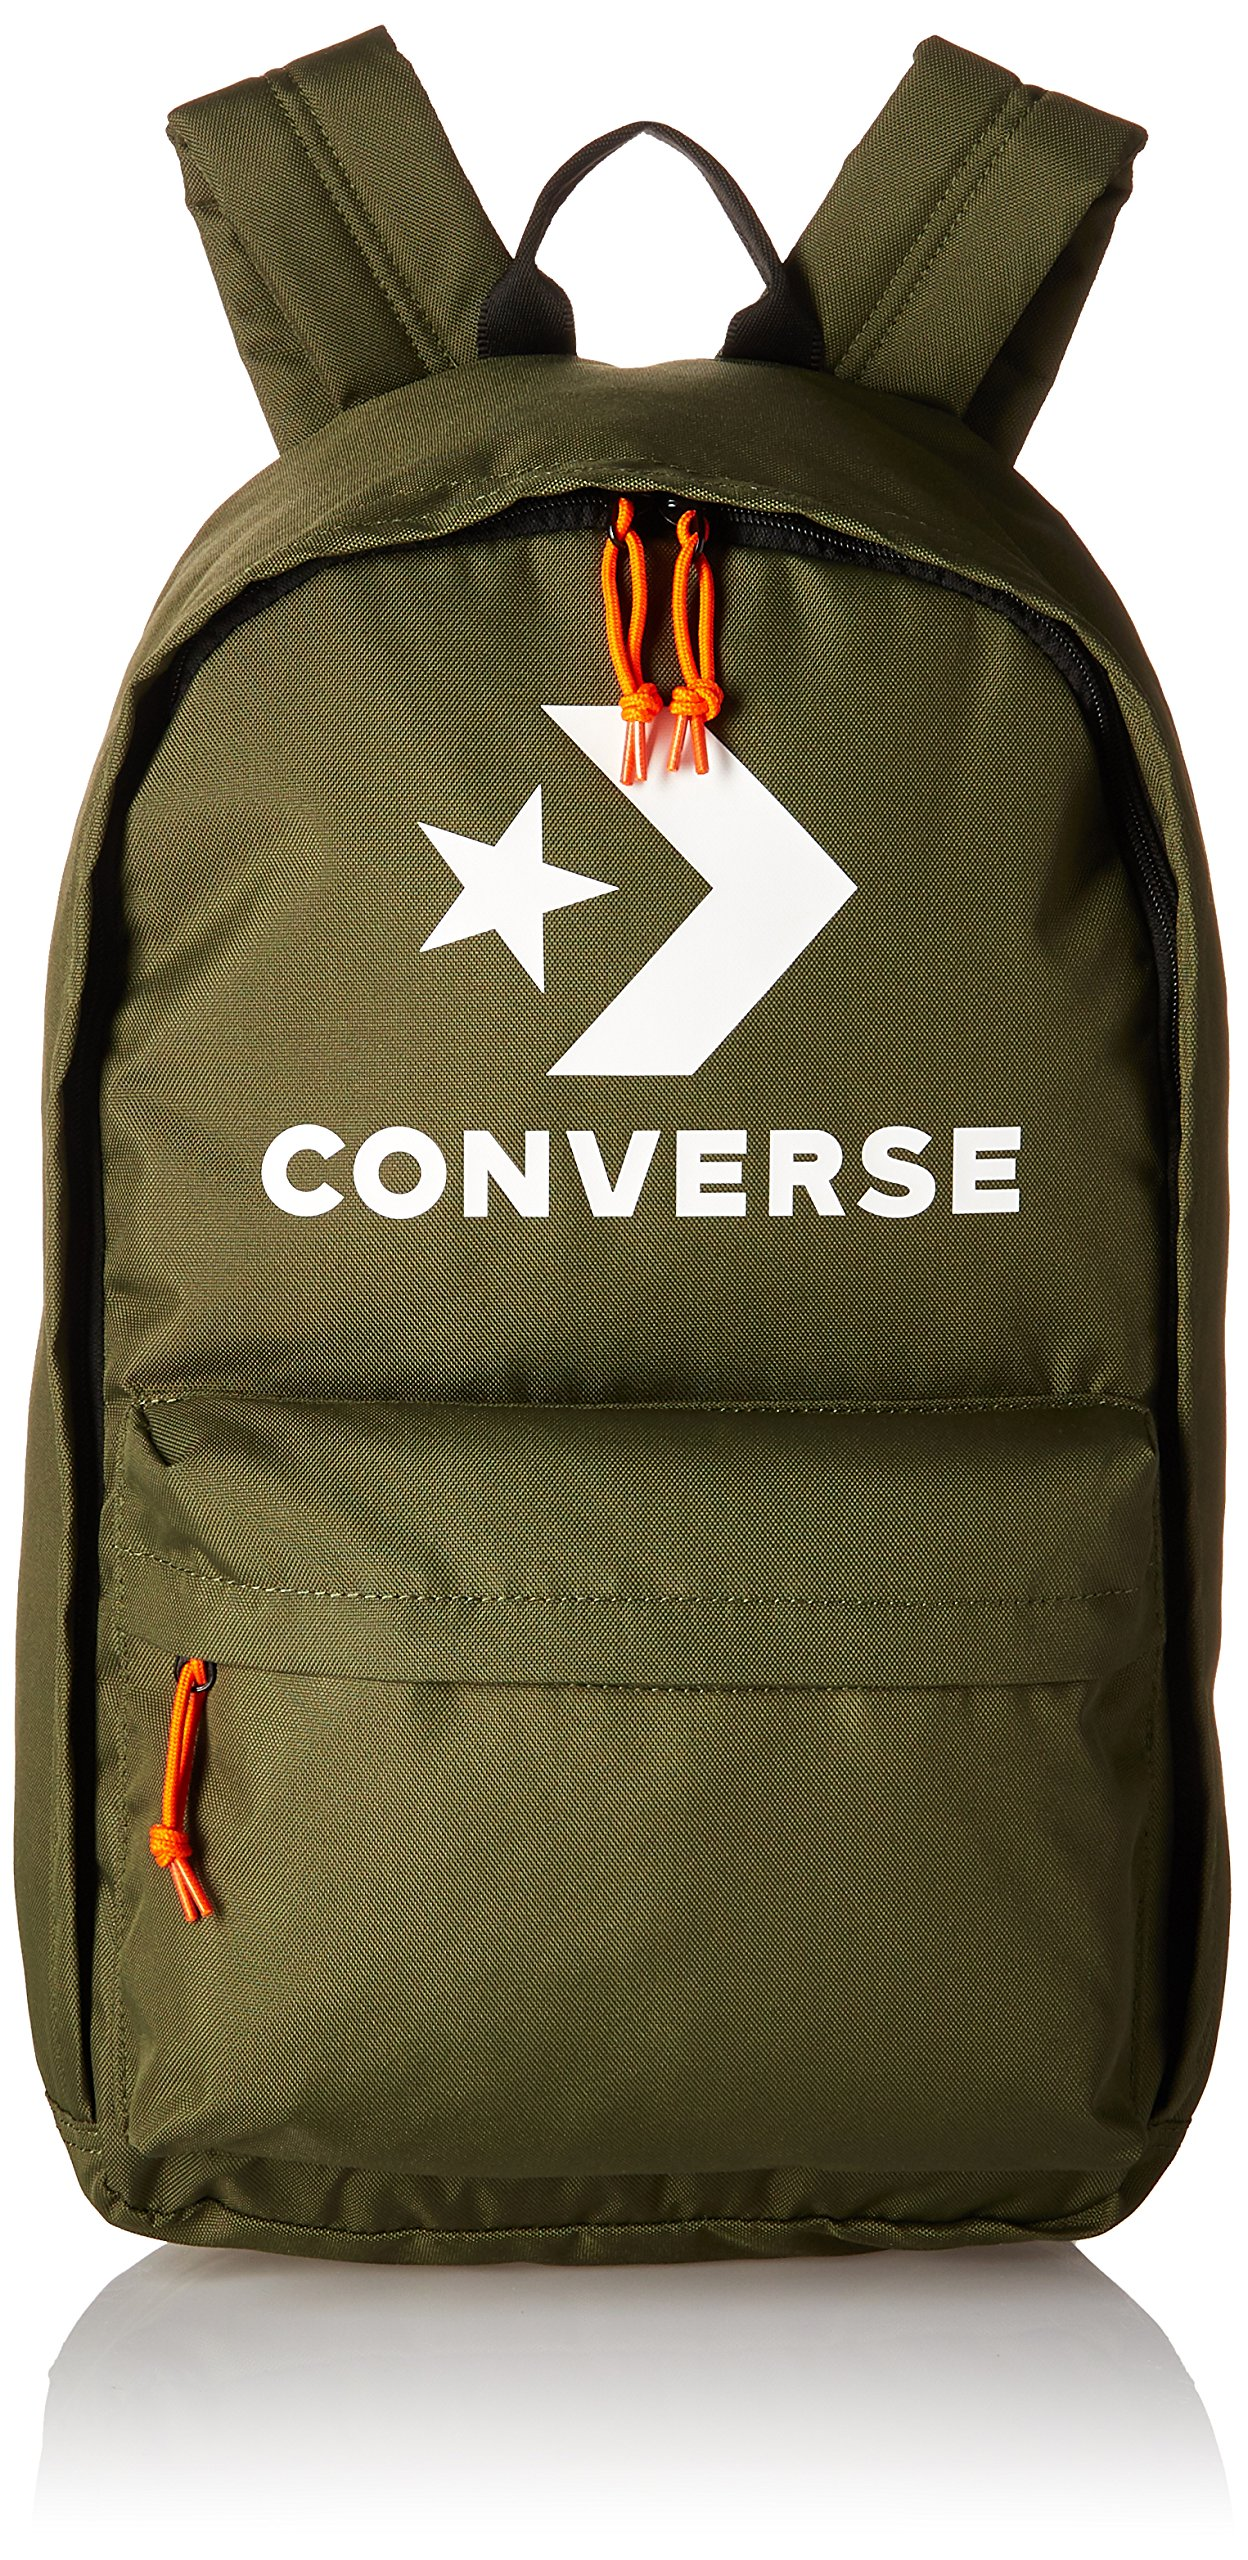 Converse Edc 22 Star Chevron Print Backpack, Hunter Green/White, One Size